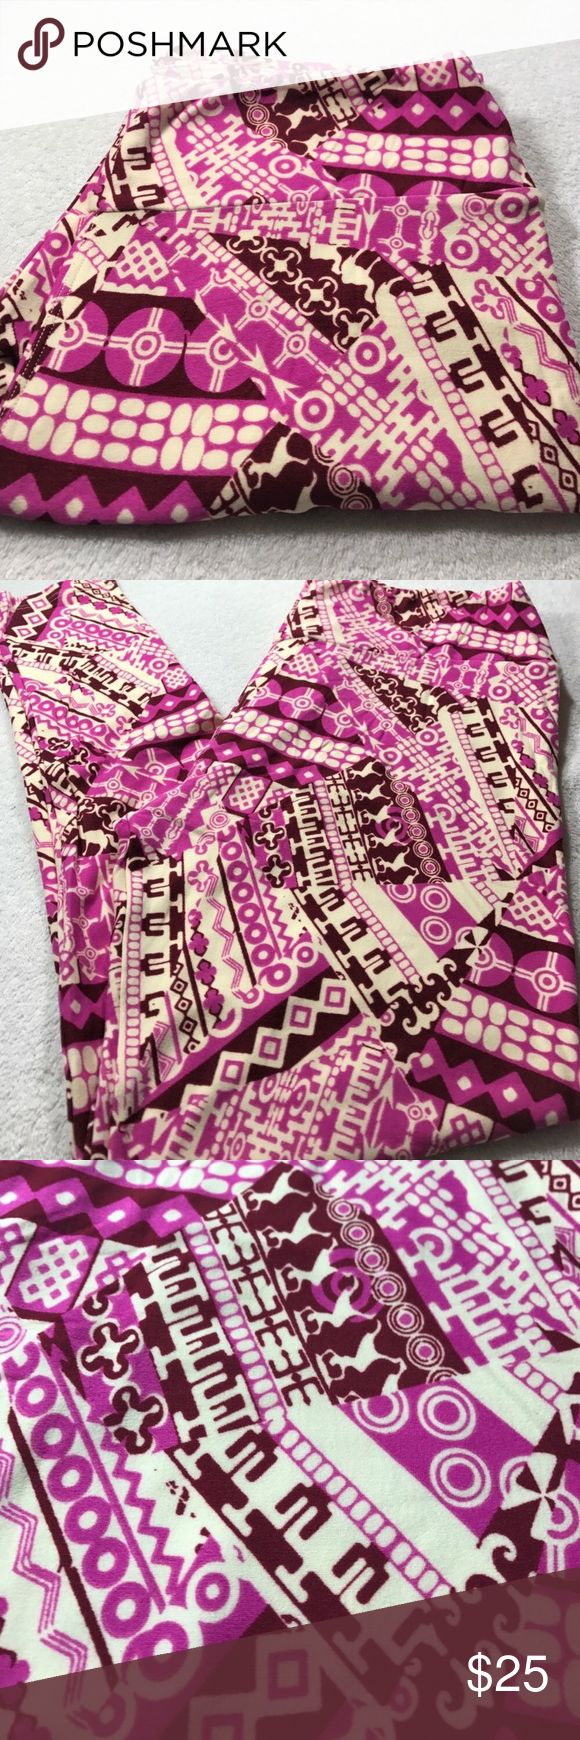 LuLaRoe Tall and curvy leggings nwt LuLaRoe Tall and curvy leggings nwt 🍀 Price is firm unless bundled. LuLaRoe Pants Leggings